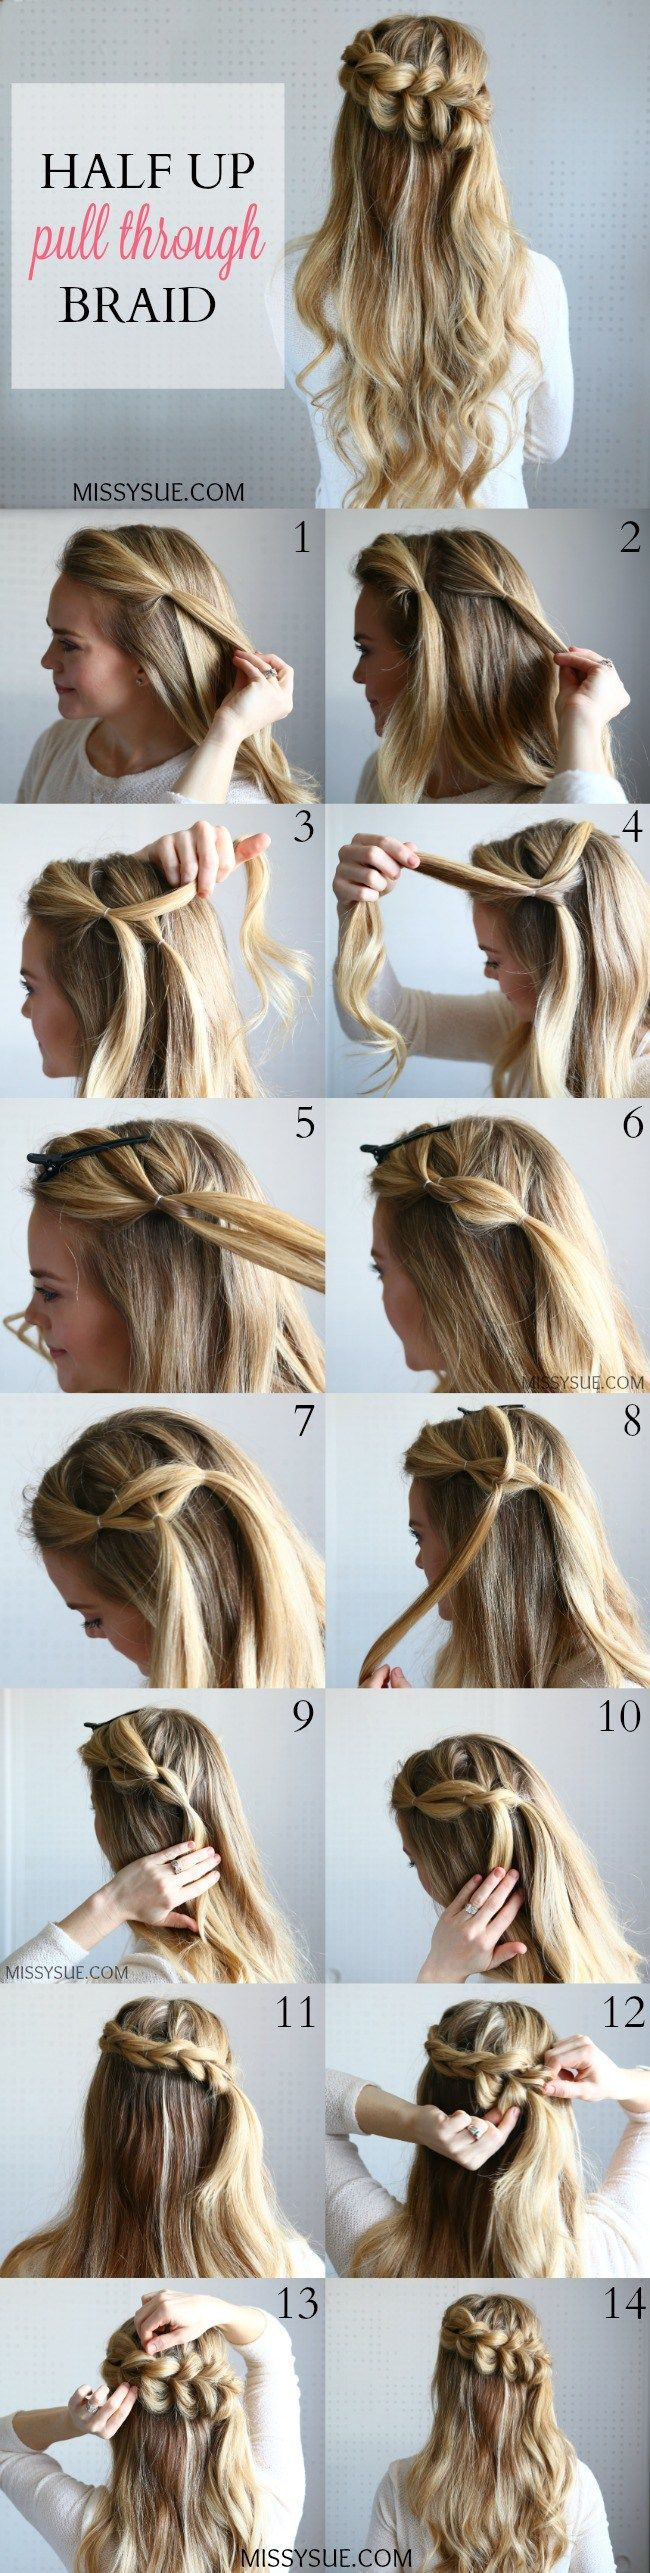 Need a hairstyle that's going to last hours of dancing at a summer festival? The half up pull through braid is it!